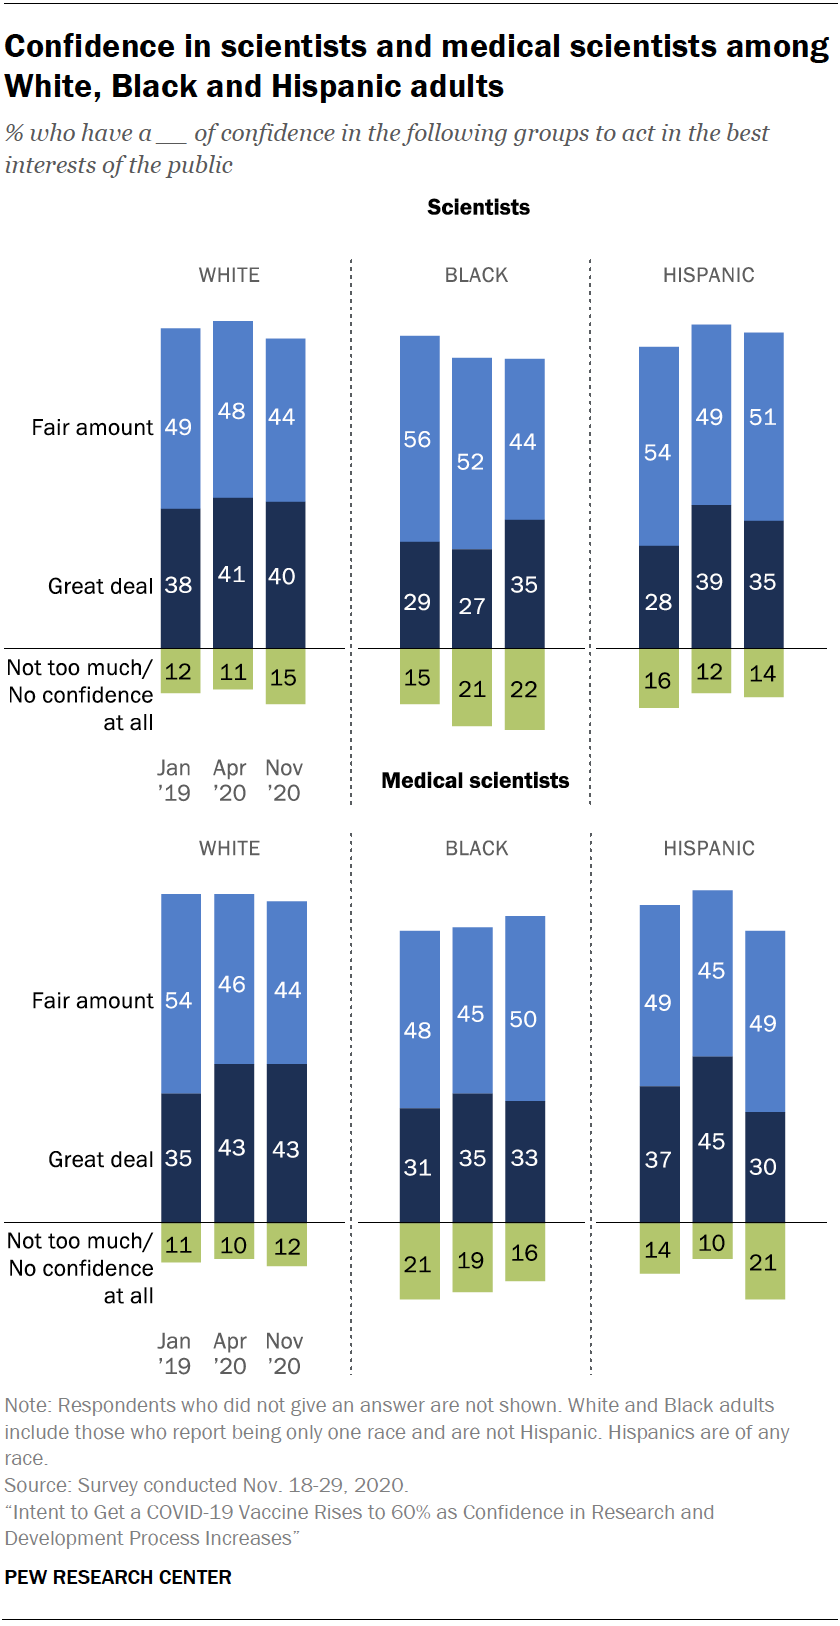 Chart shows confidence in scientists and medical scientists among White, Black and Hispanic adults